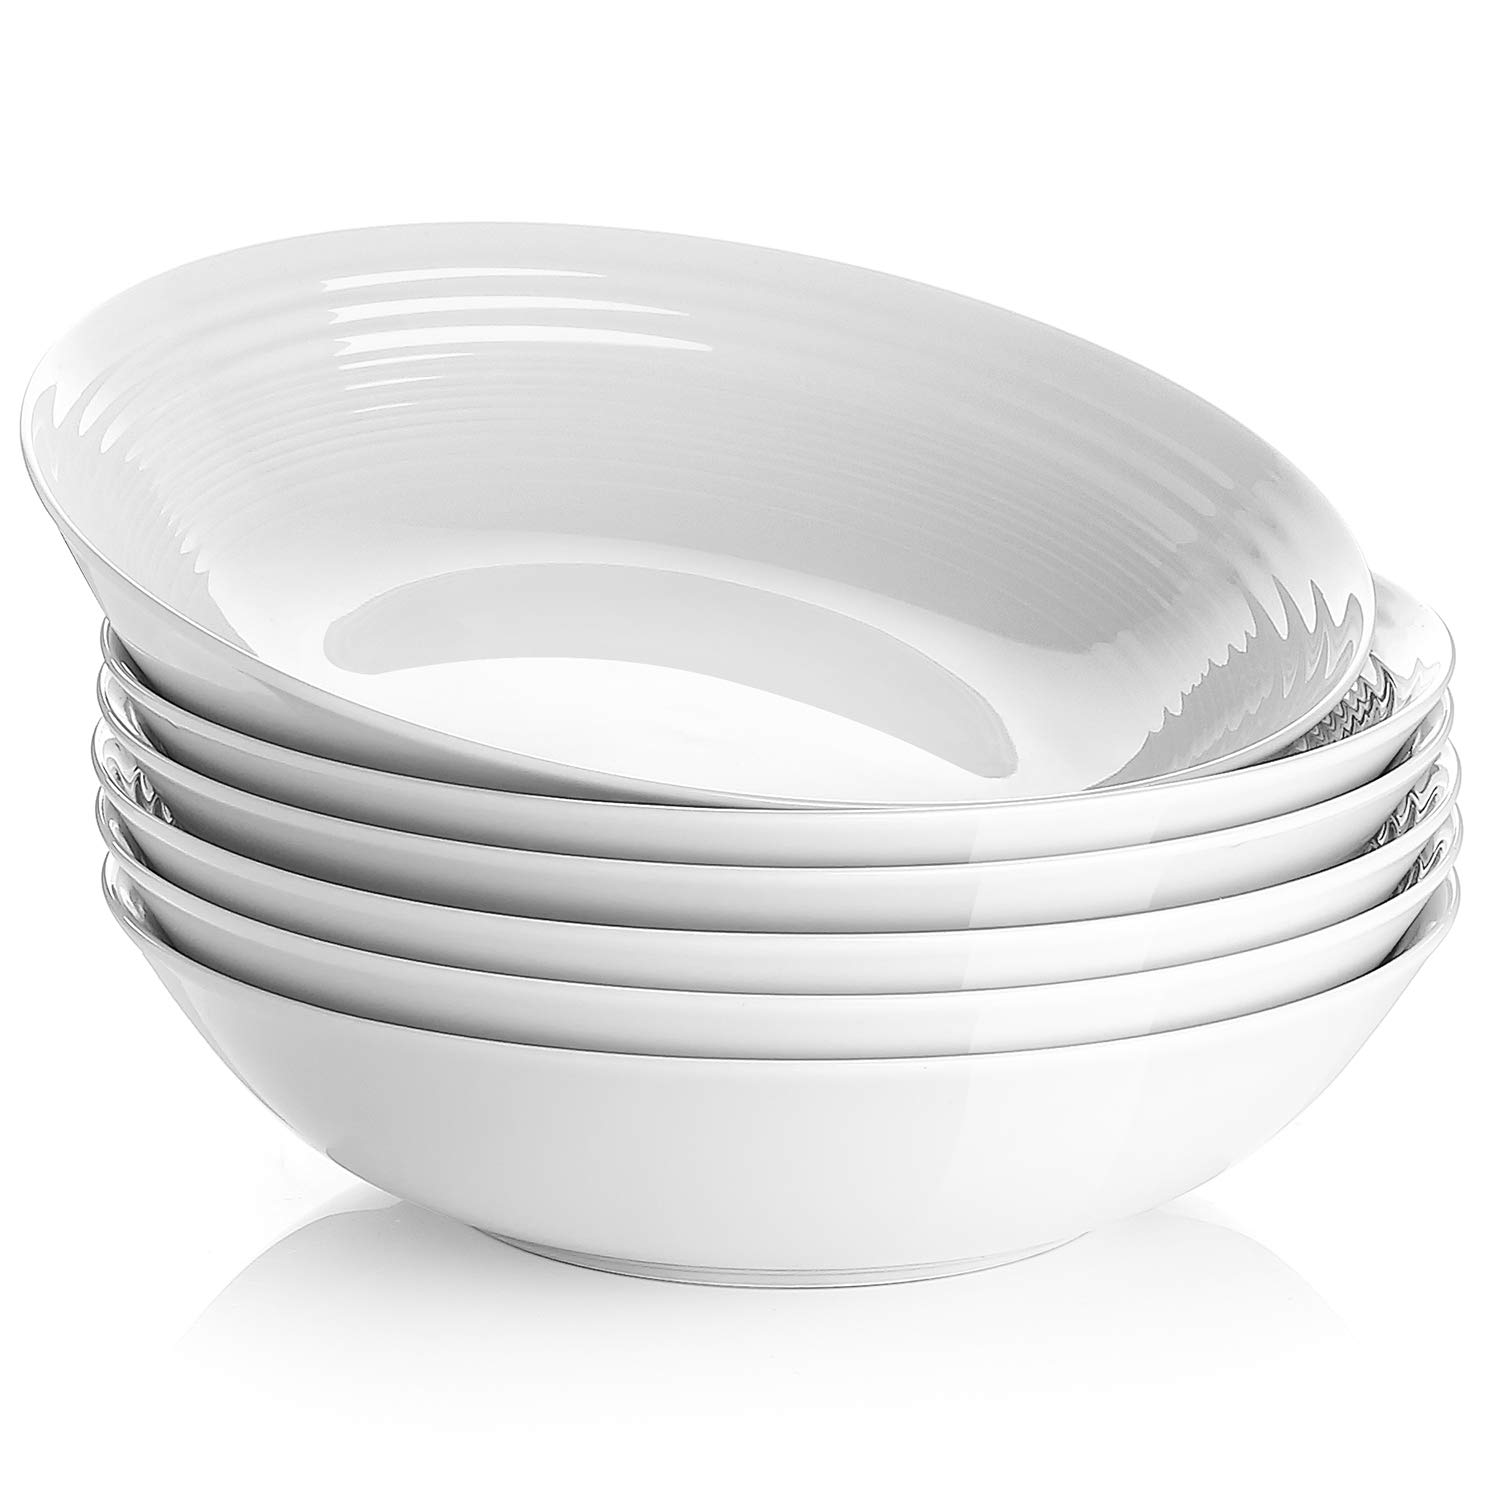 YHY 26 OZ Porcelain Pasta/Salad Bowls,White Soup Bowl Set, Wide & Shallow, Set of 6 - Spiral Pattern